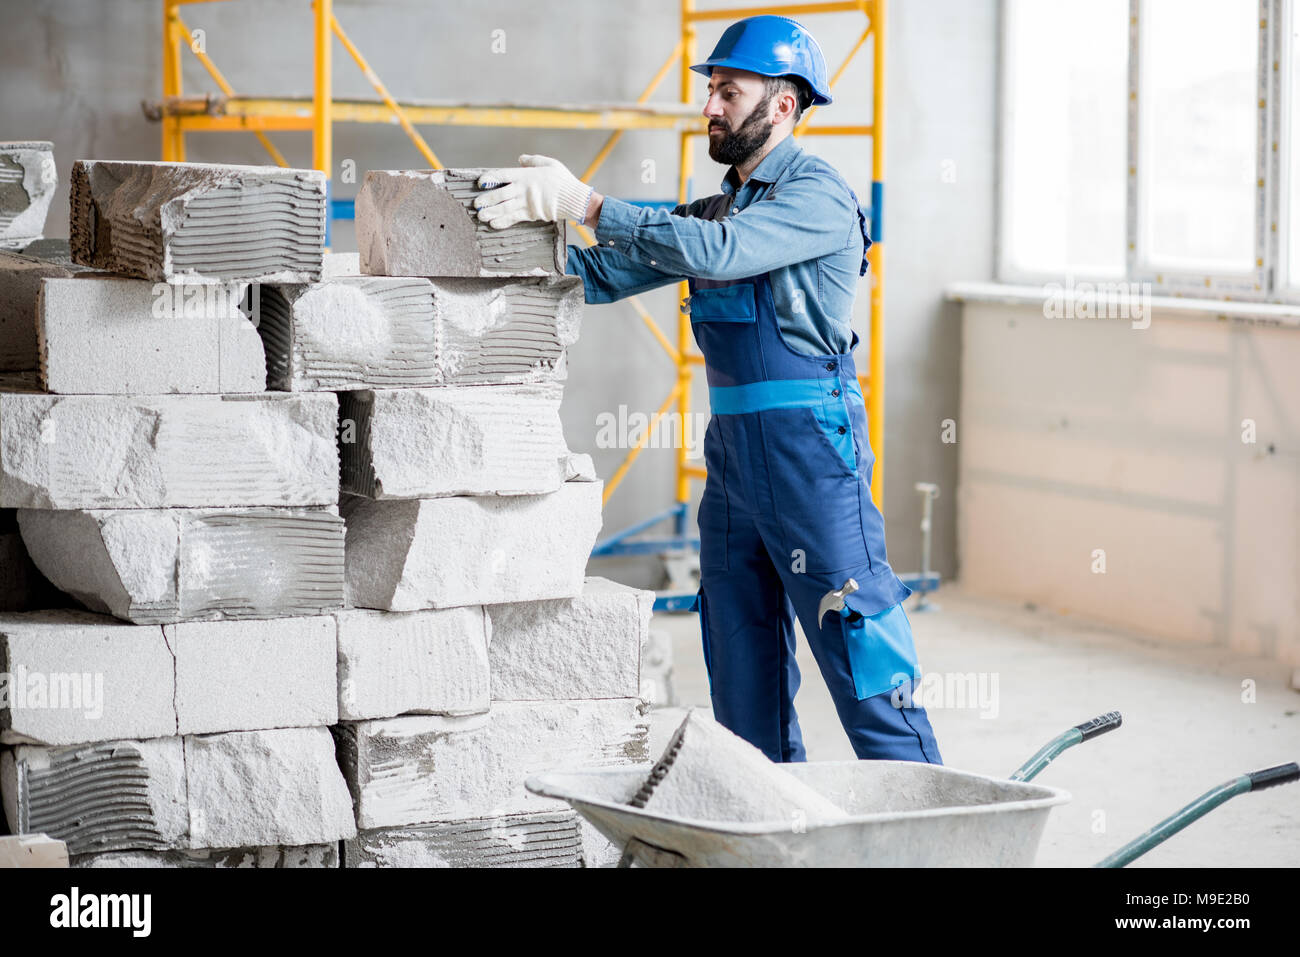 Builder working with blocks indoors - Stock Image